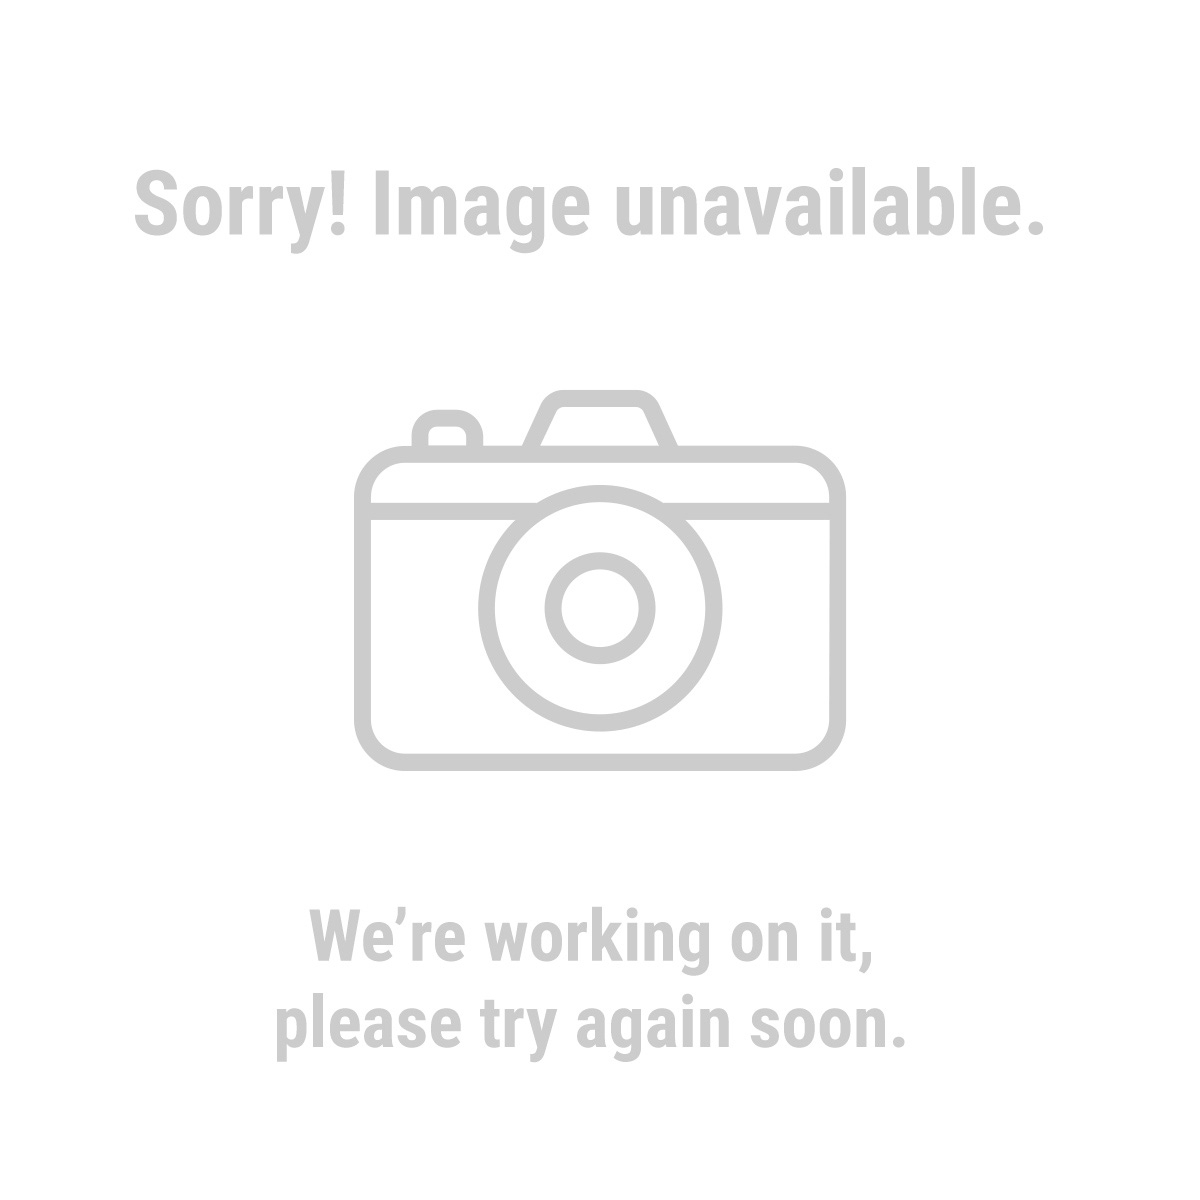 Cen-Tech 98674 5-in-1 Digital Multimeter